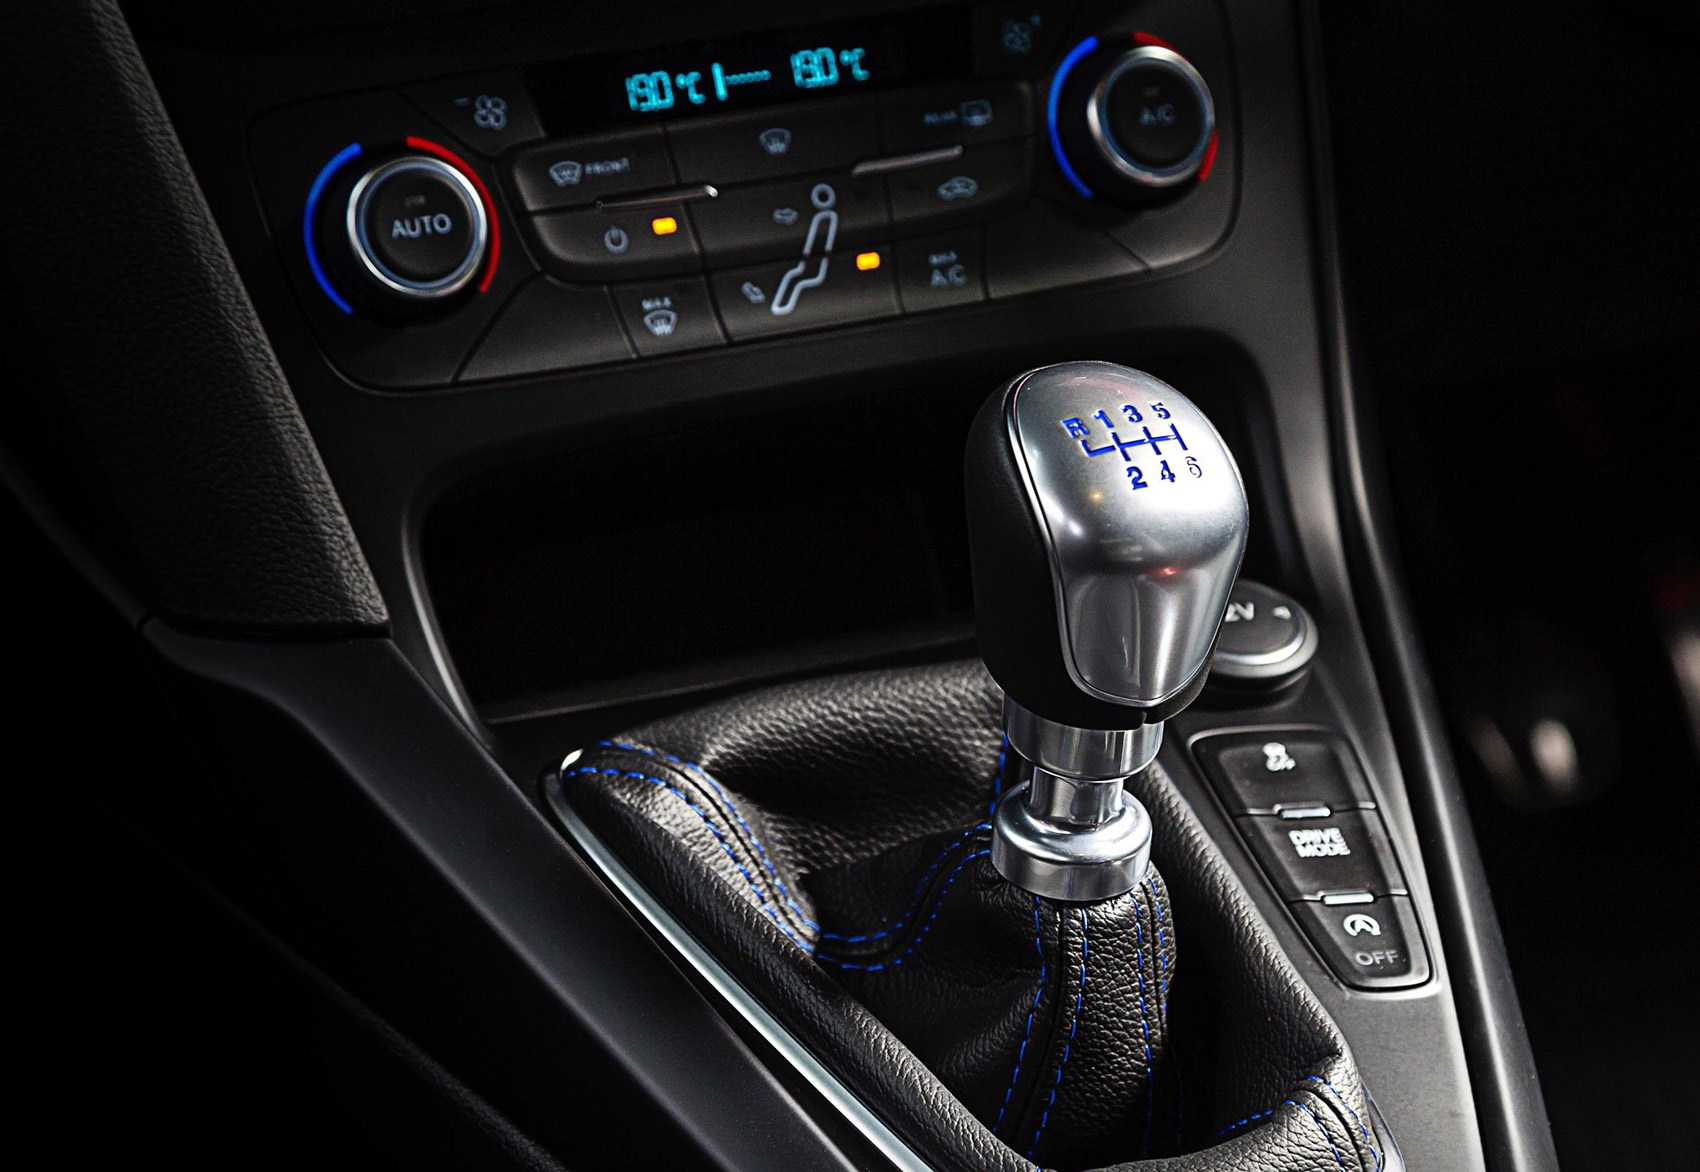 Six Sd Manual Gearbox Keeps The Diy Alive In New Ford Focus Rs